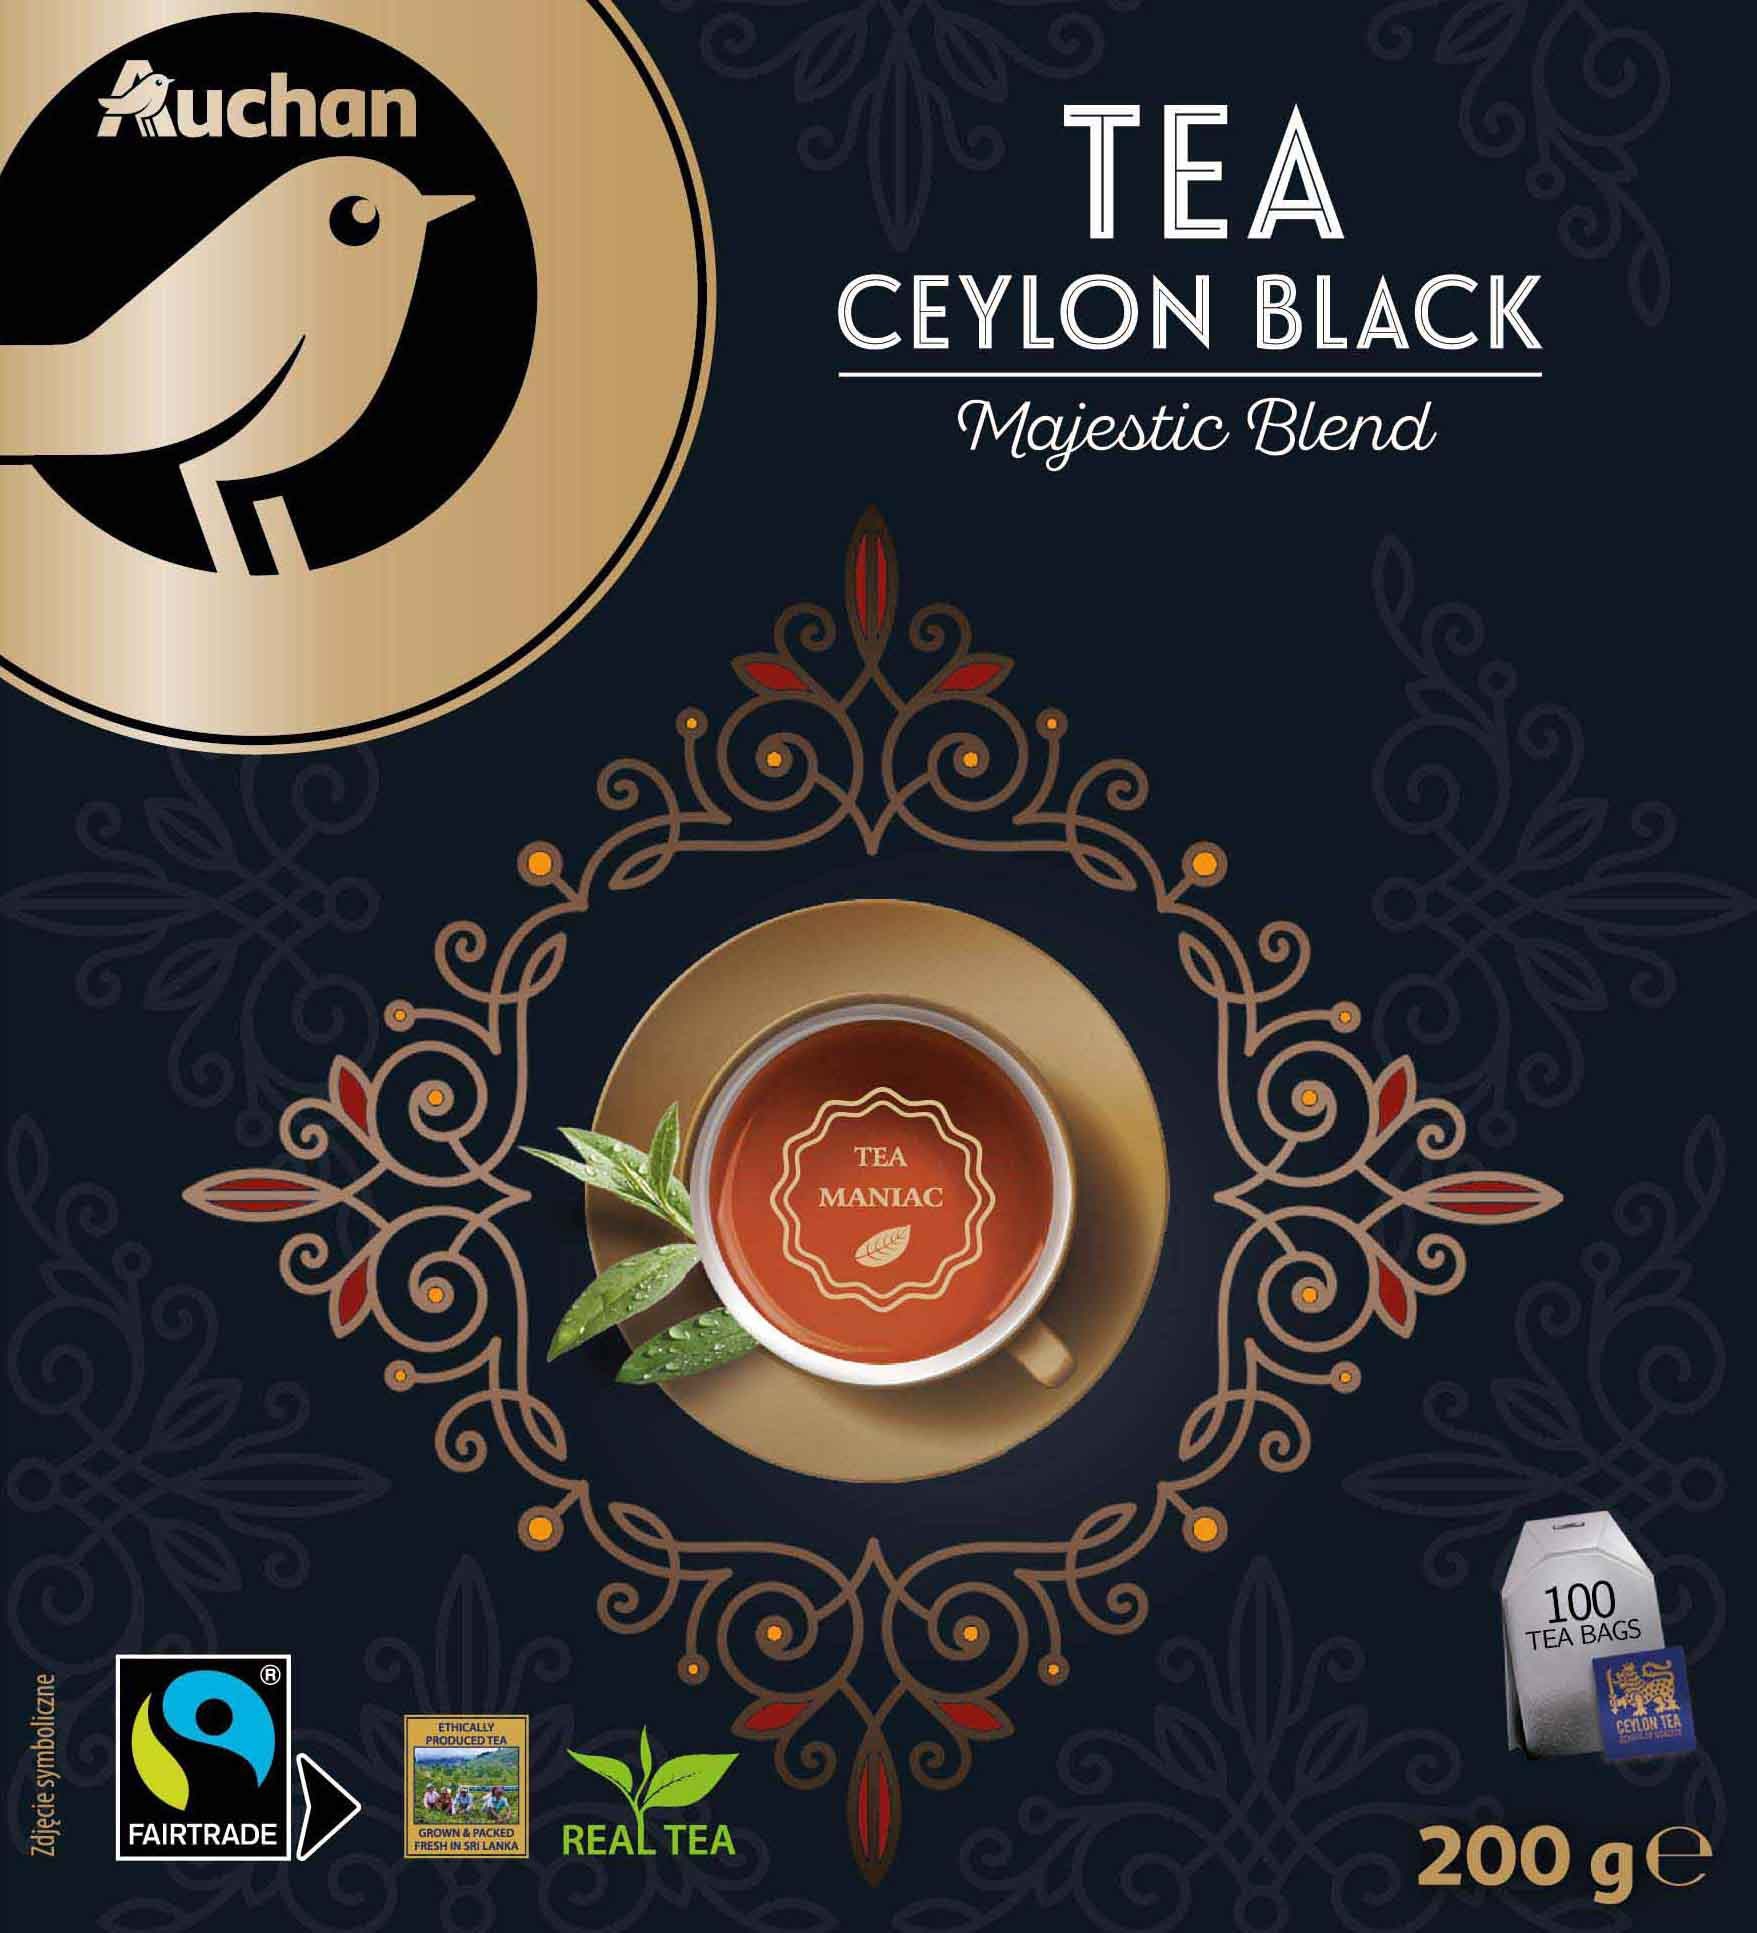 Tea Ceylon Black